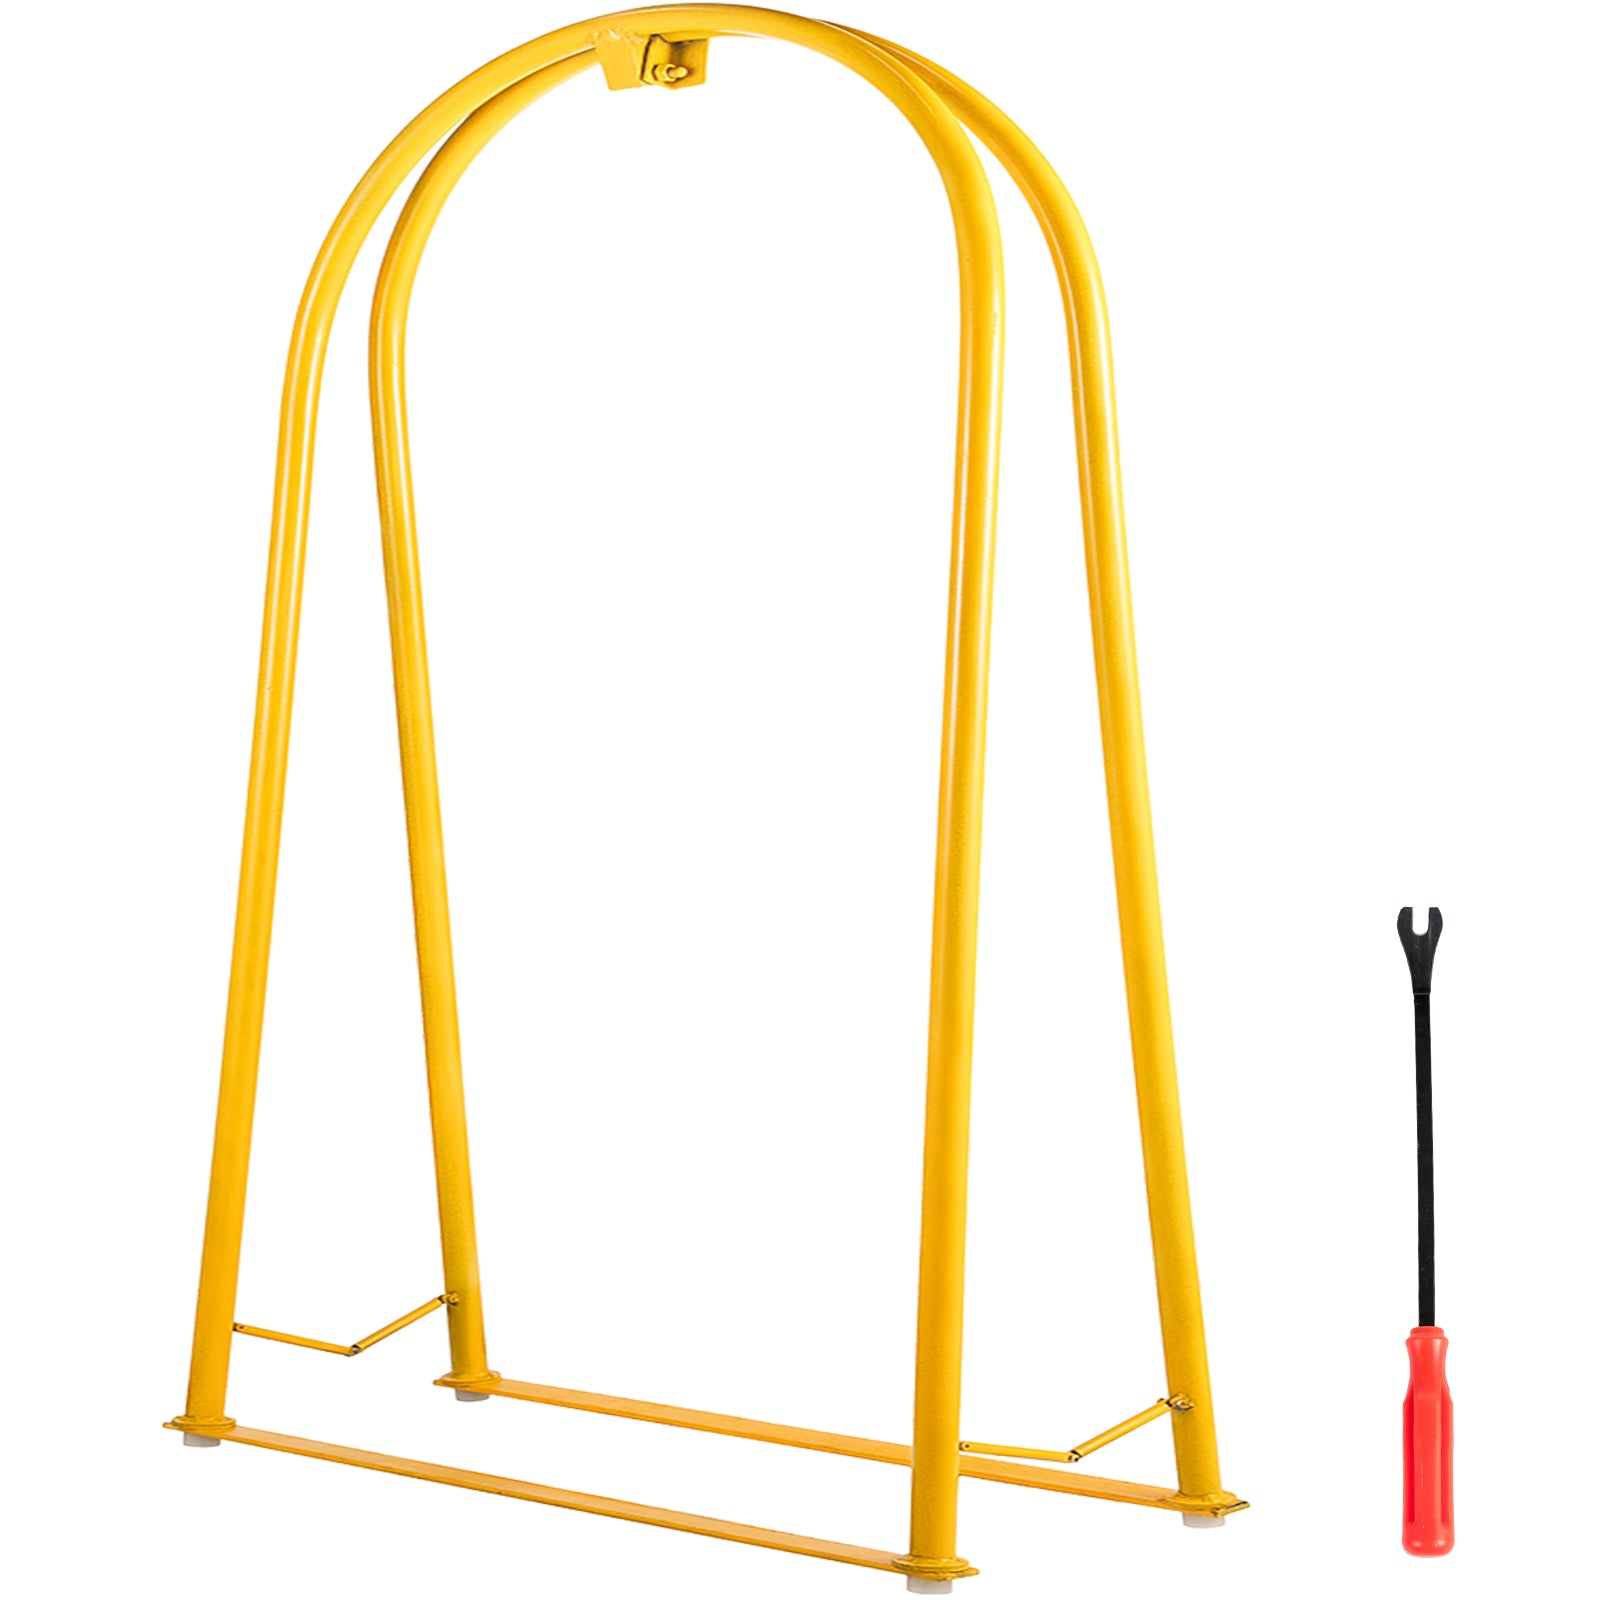 Tire Inflation Cage Tire Cage, 2-bar Car Tire Inflation Tool With A Tire Changer